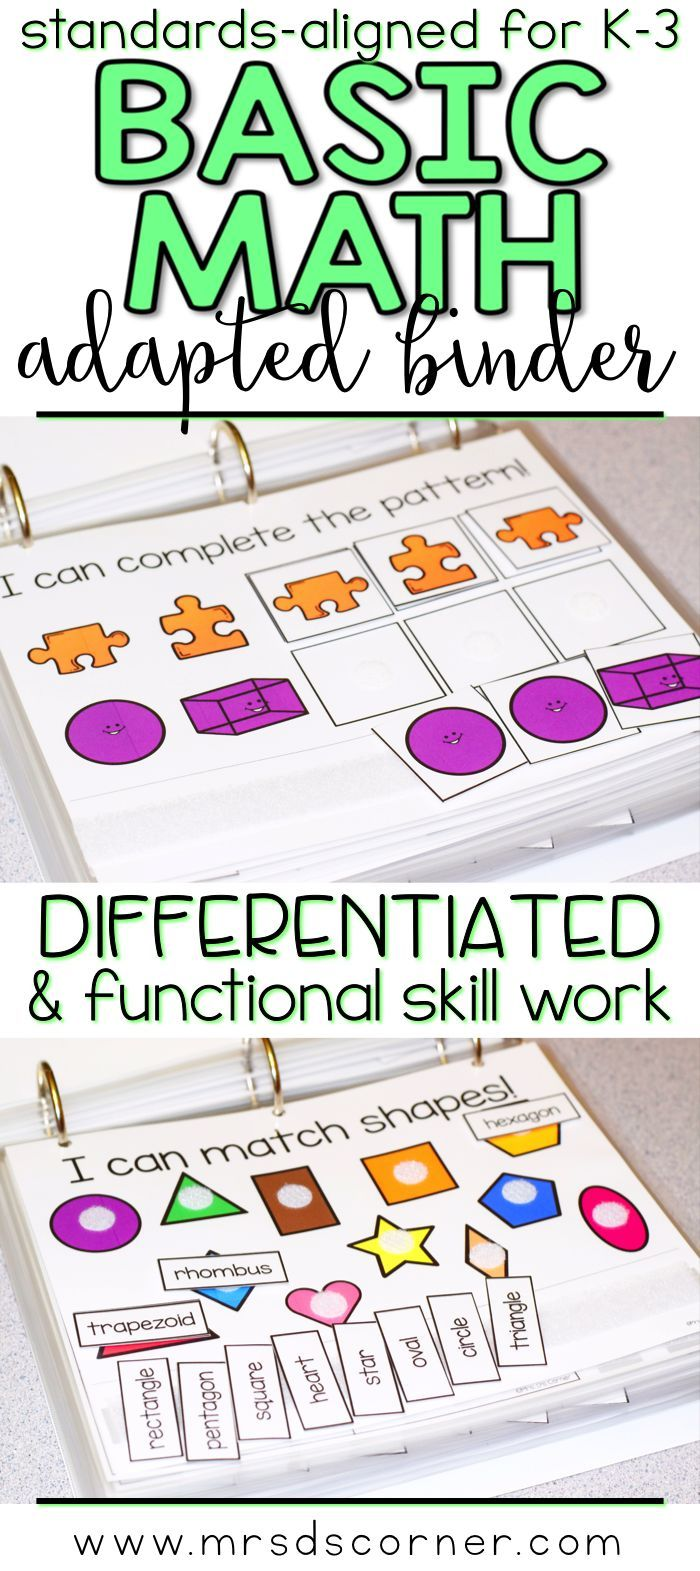 Worksheet Learn Basic Math Online Free 1000 ideas about basic math on pinterest help multiplying skills functional and differentiated skill work that covers mathematics standards aligned